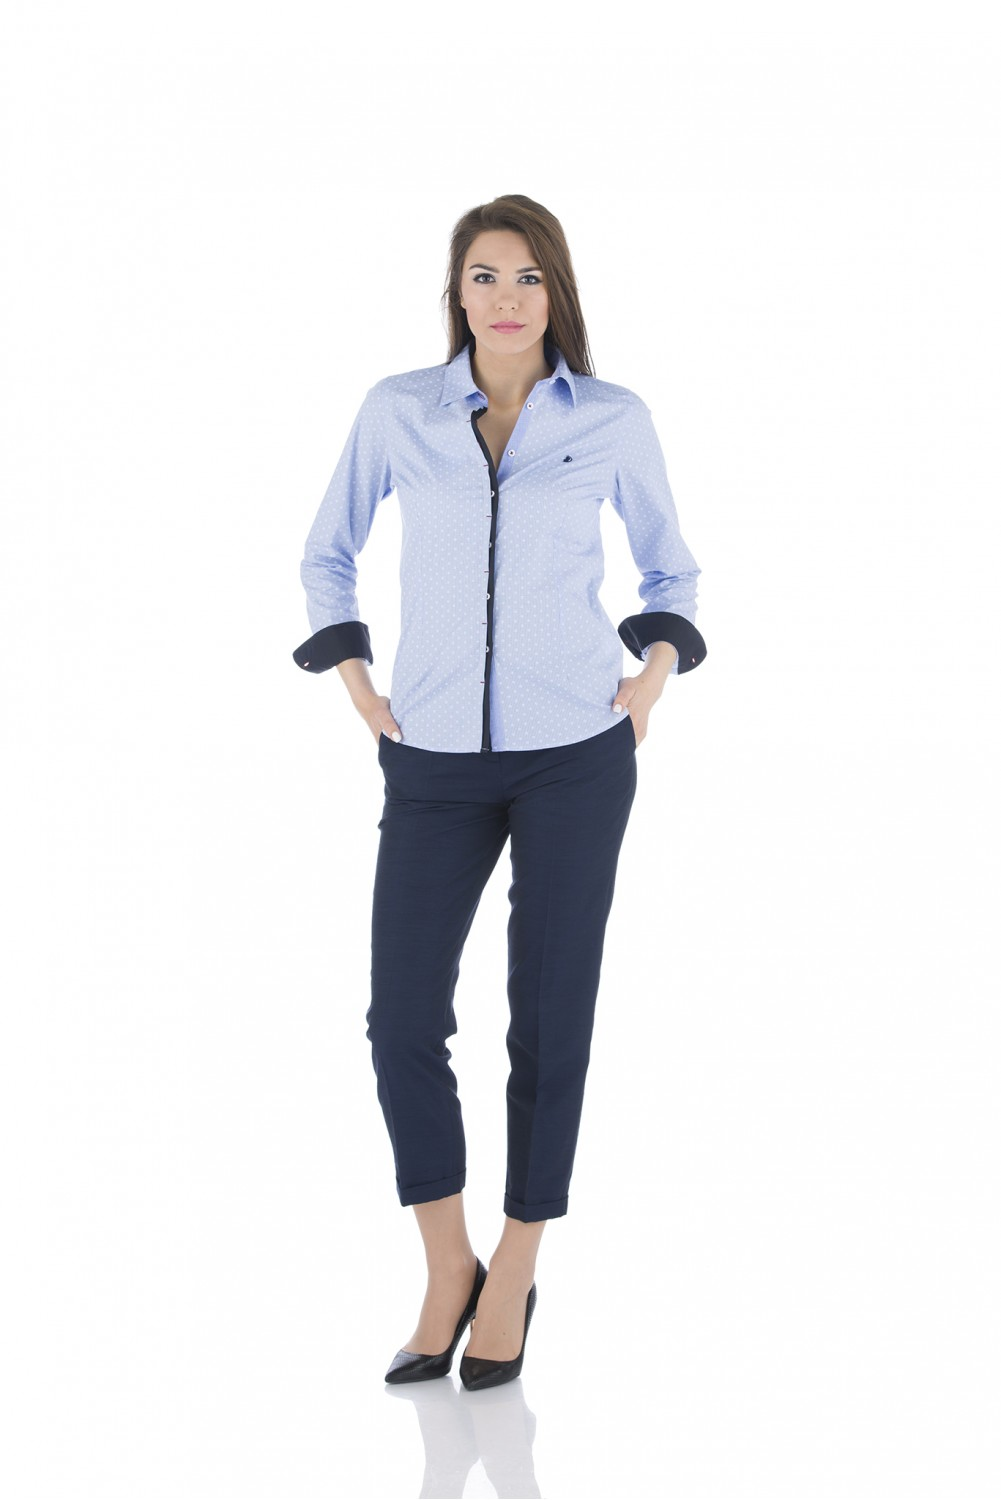 Light blue shirt with navy details